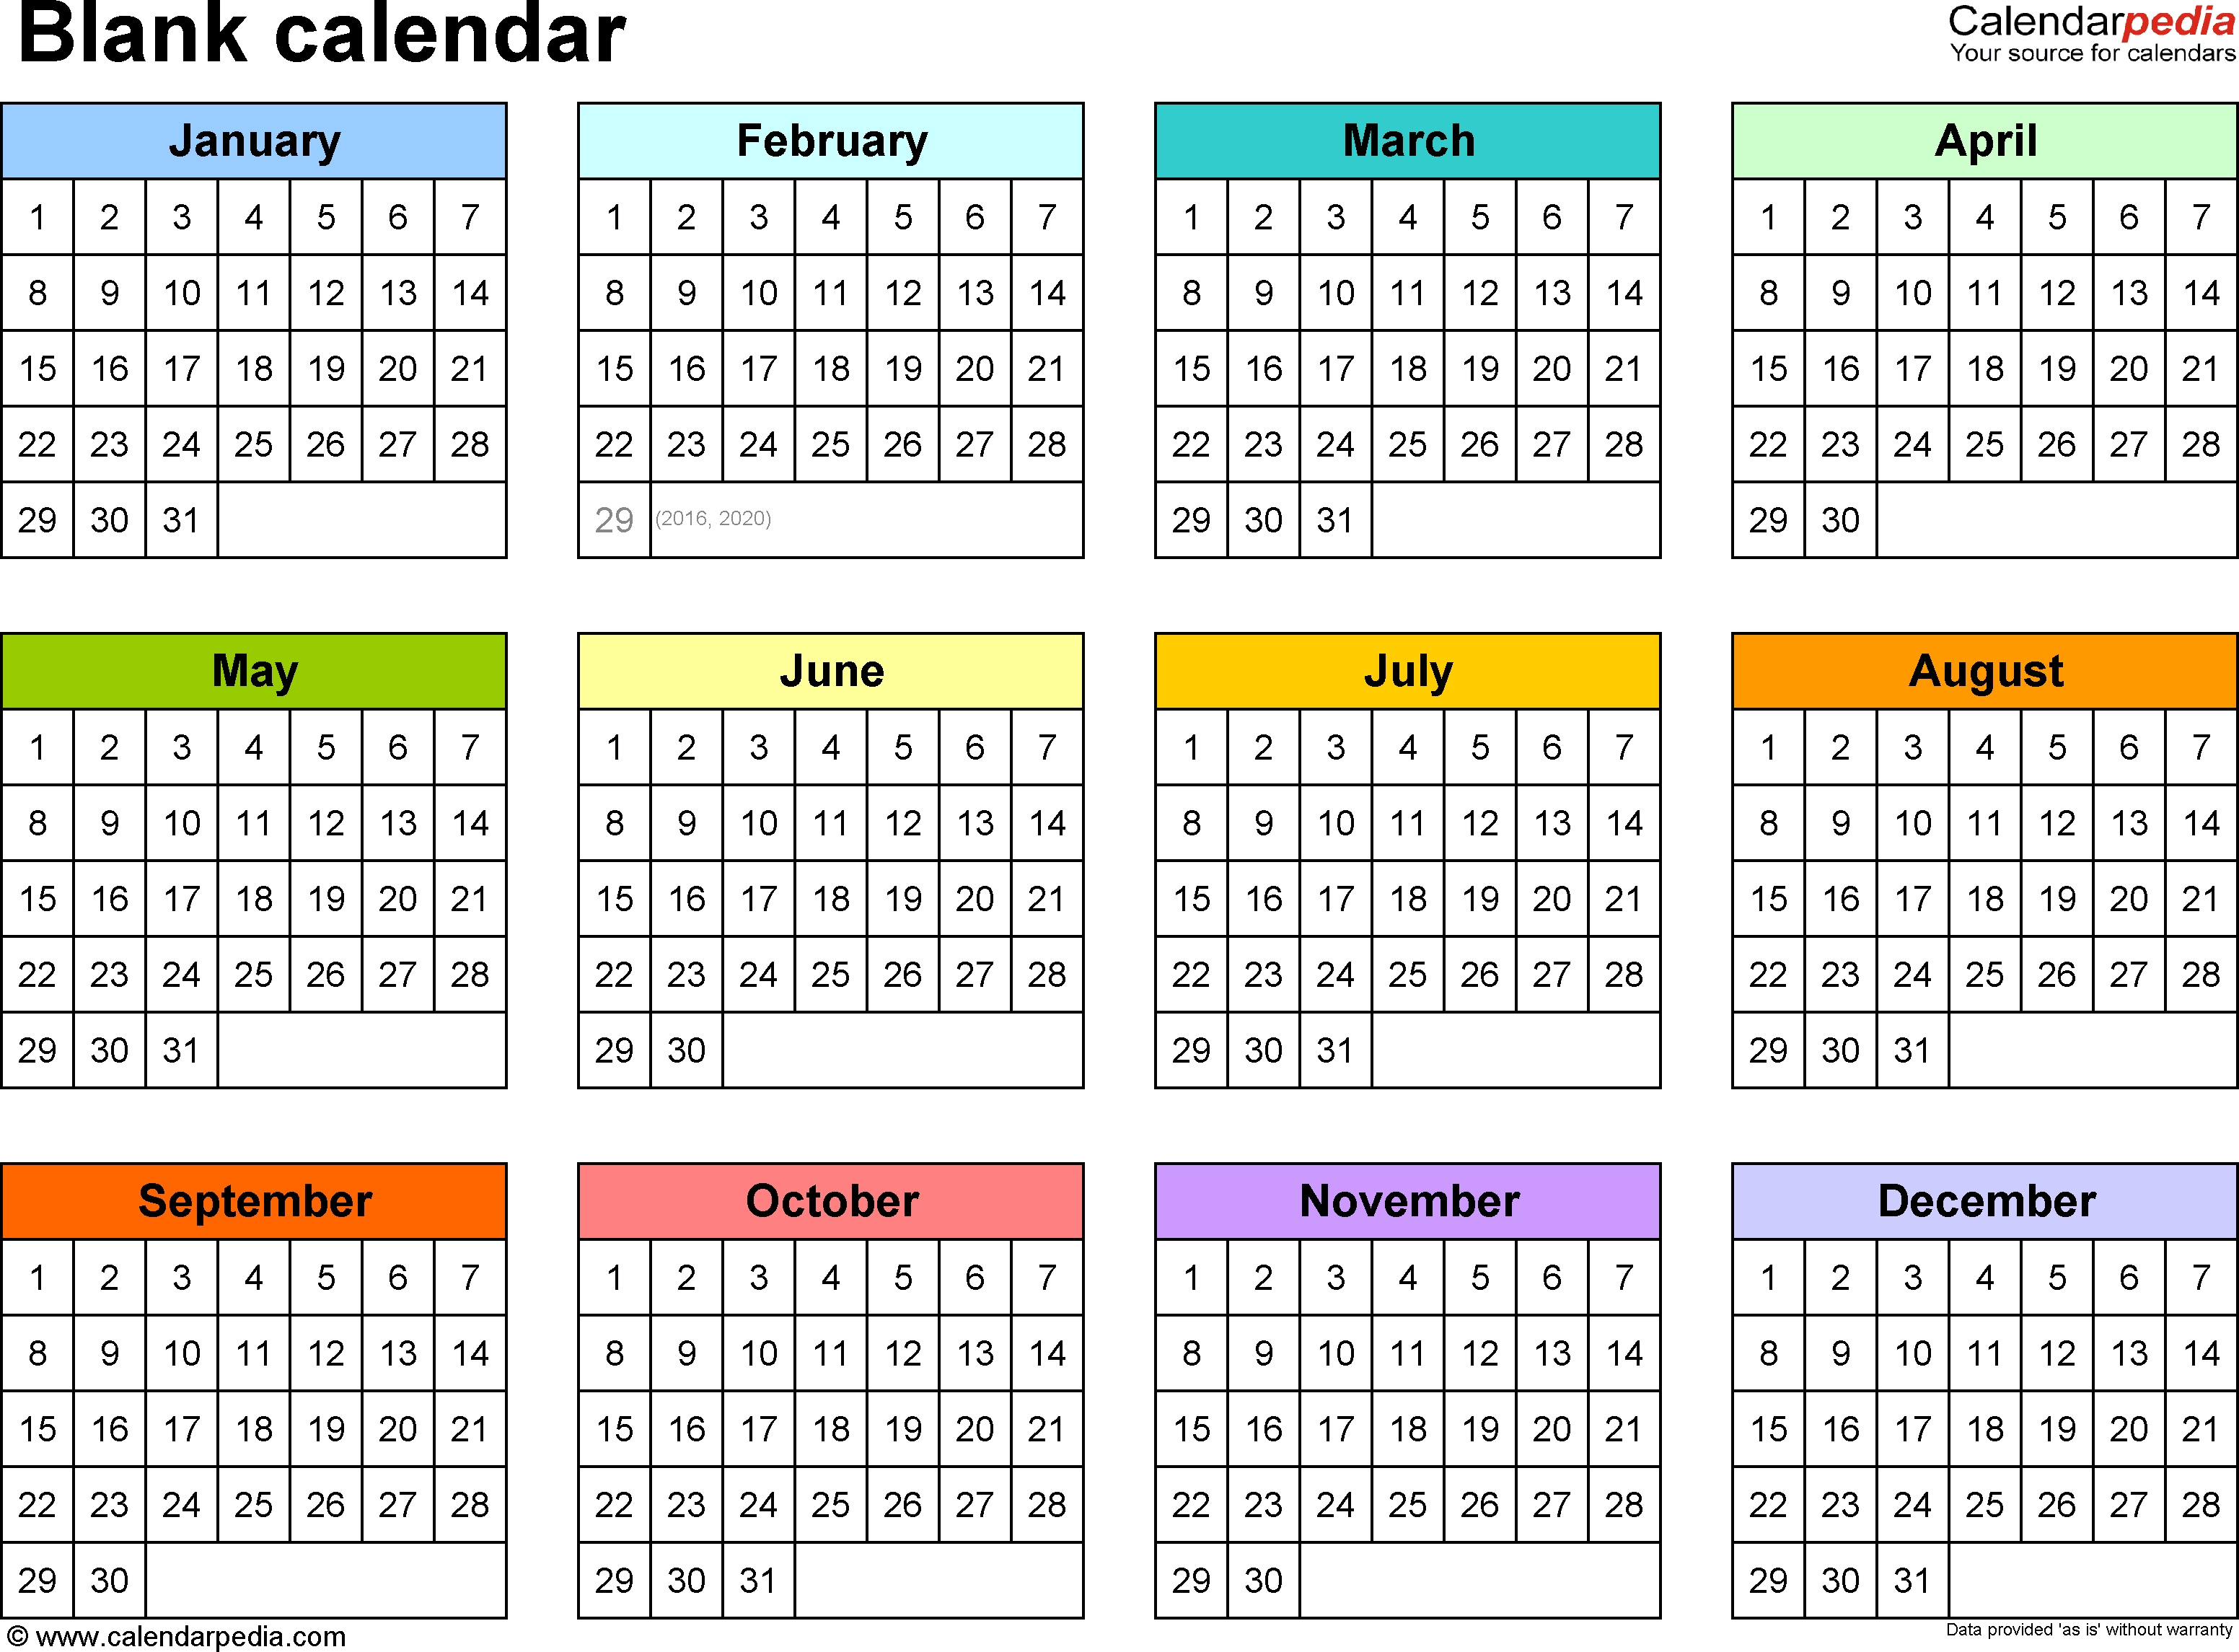 Blank Calendar - 9 Free Printable Microsoft Word Templates throughout Year At A Glance Template